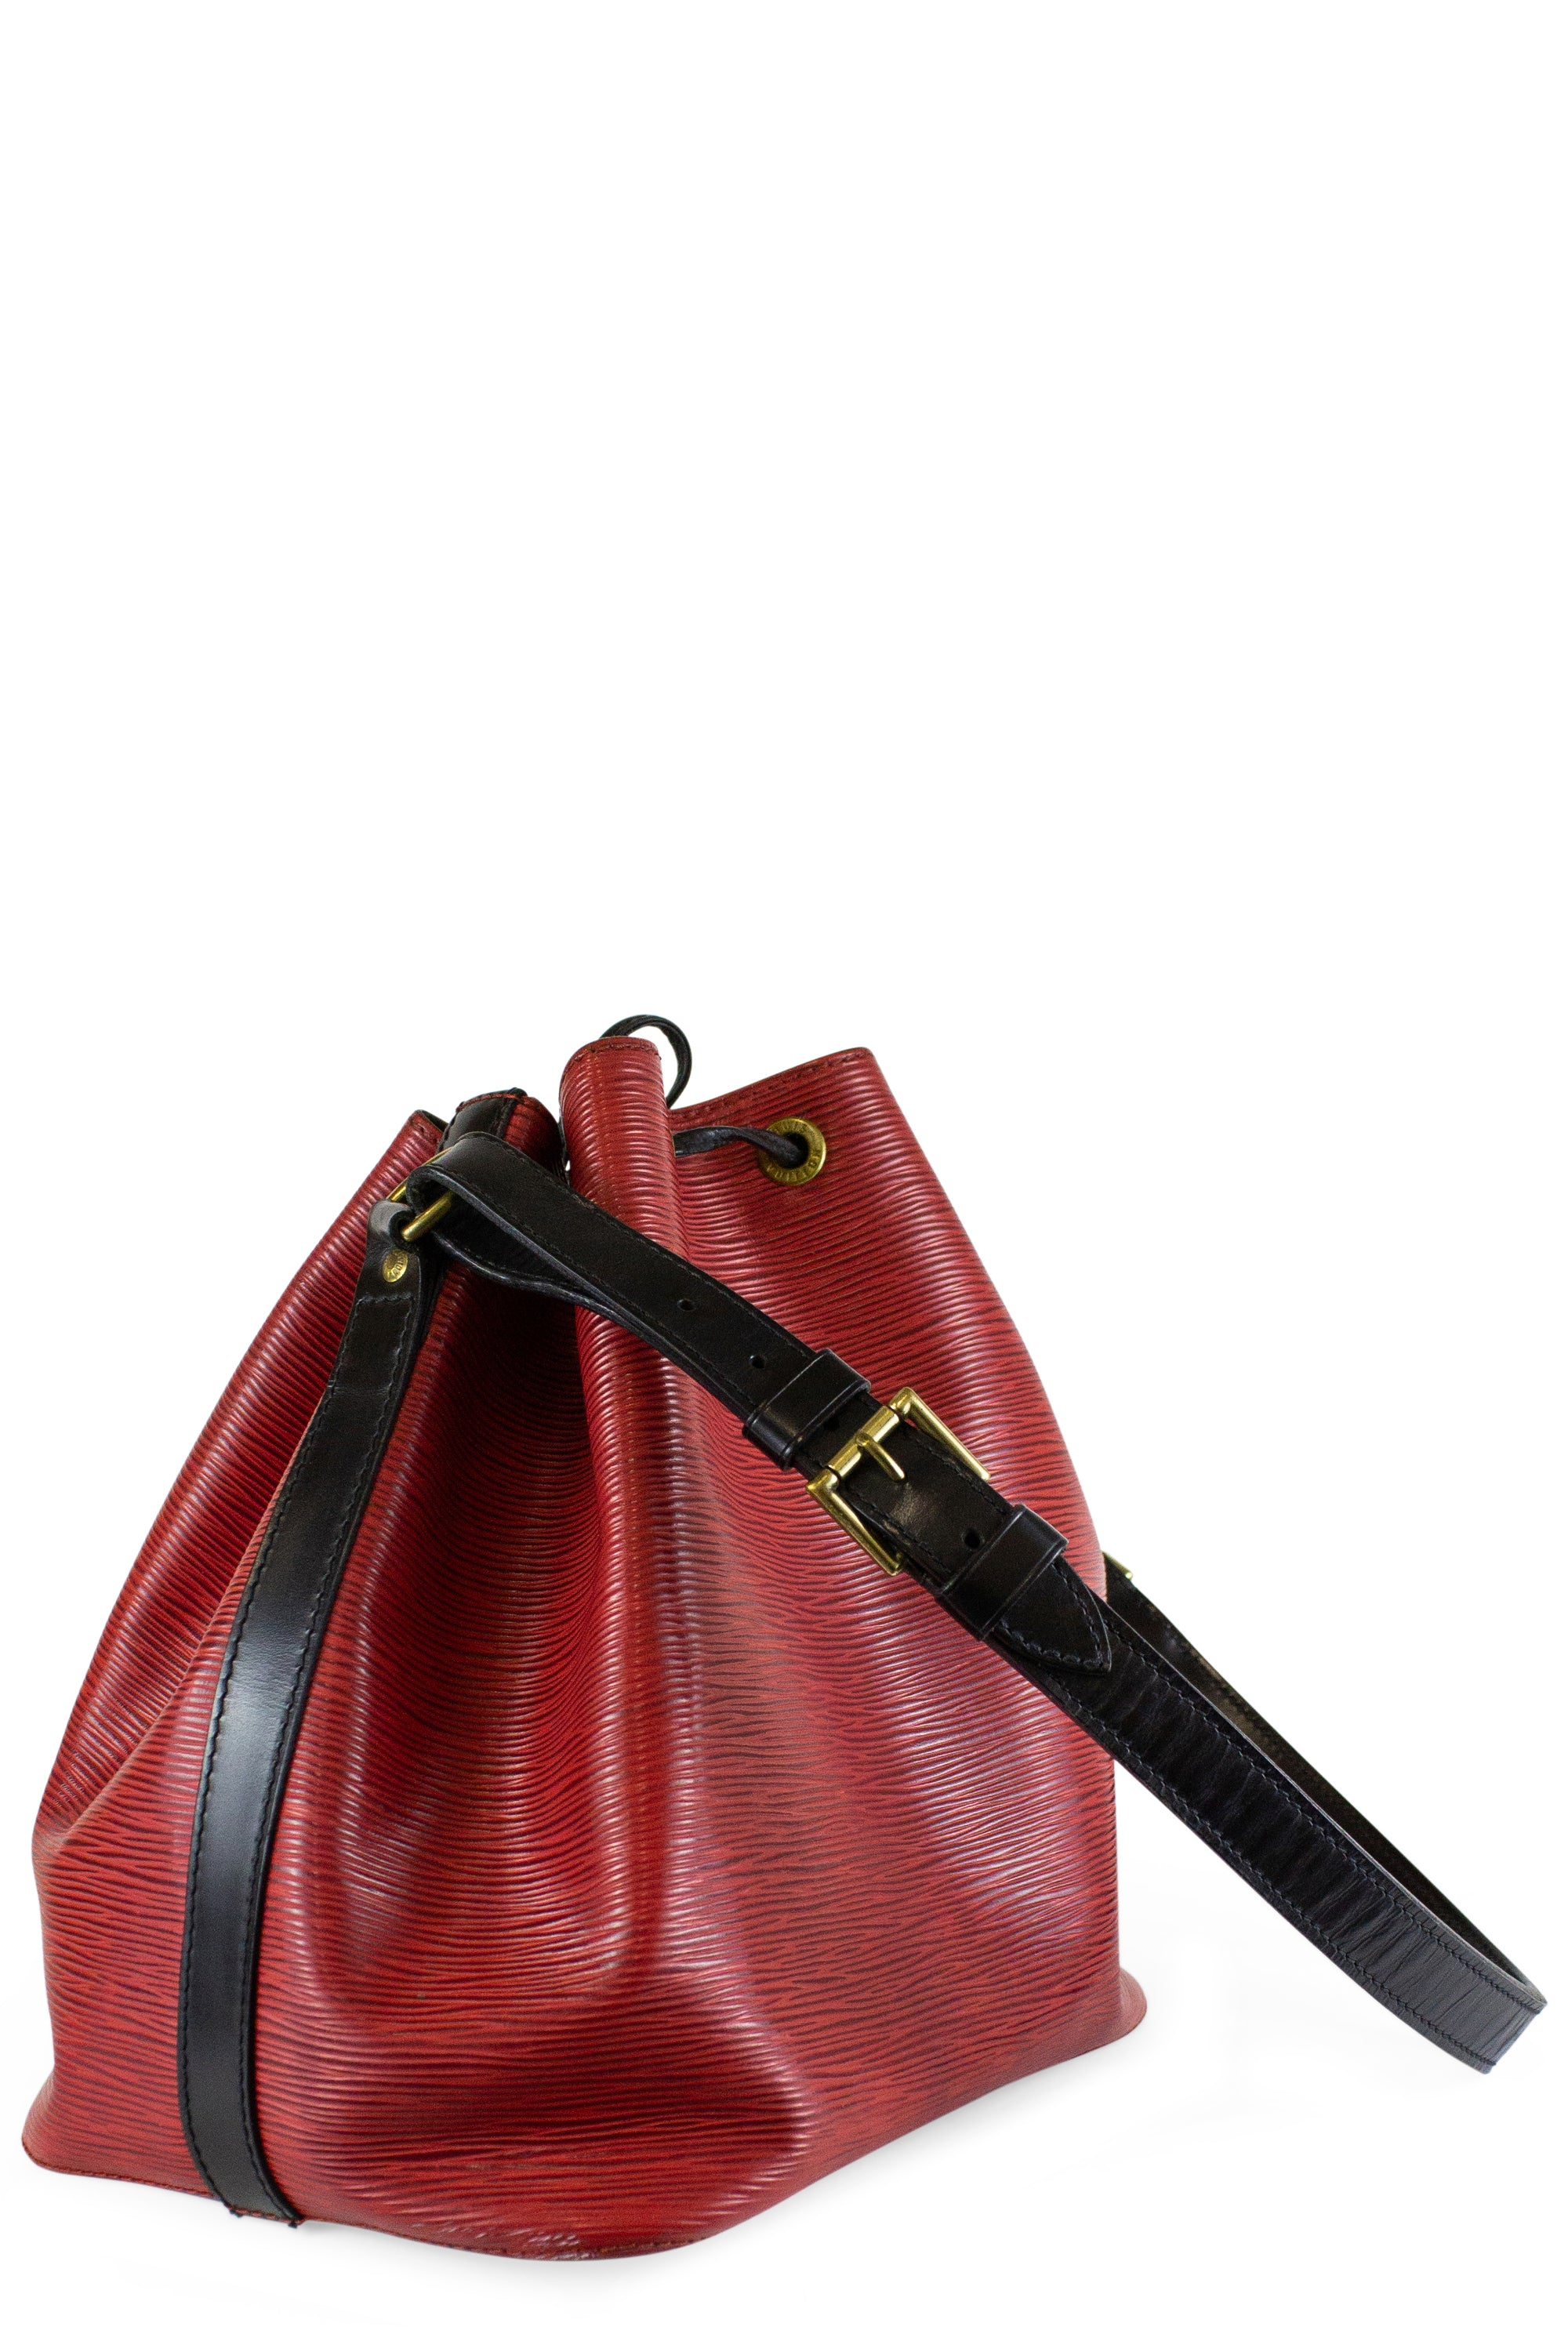 Louis Vuitton Petit Sac Noé Red Black